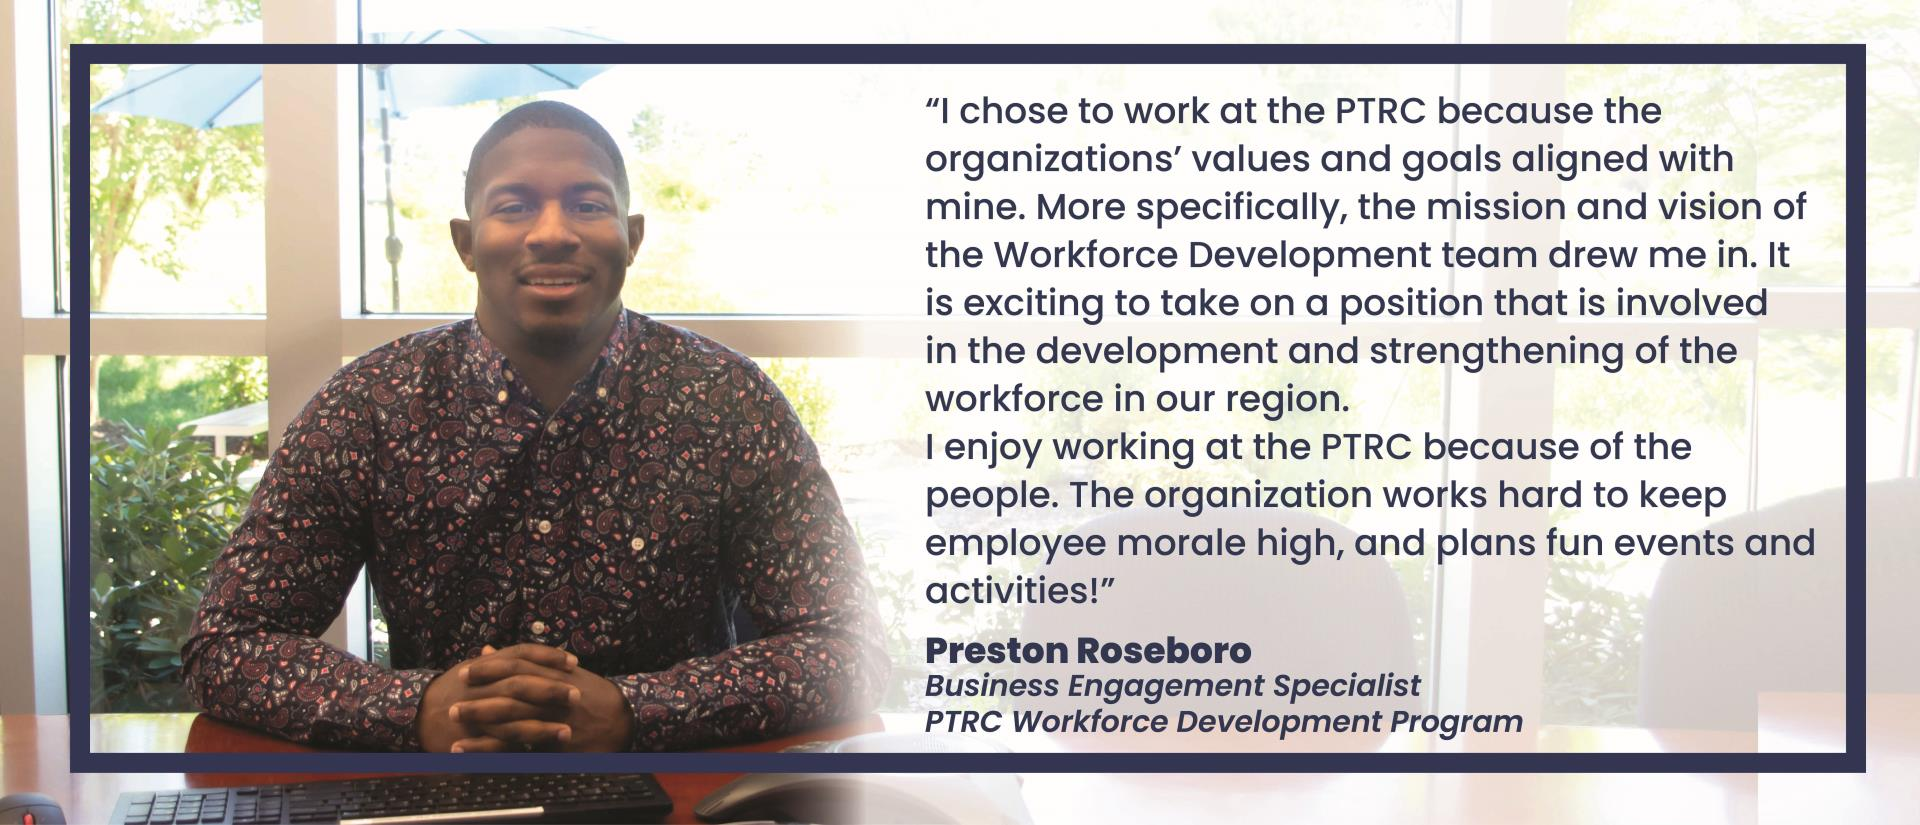 Preston Roseboro, Business Engagement Specialist